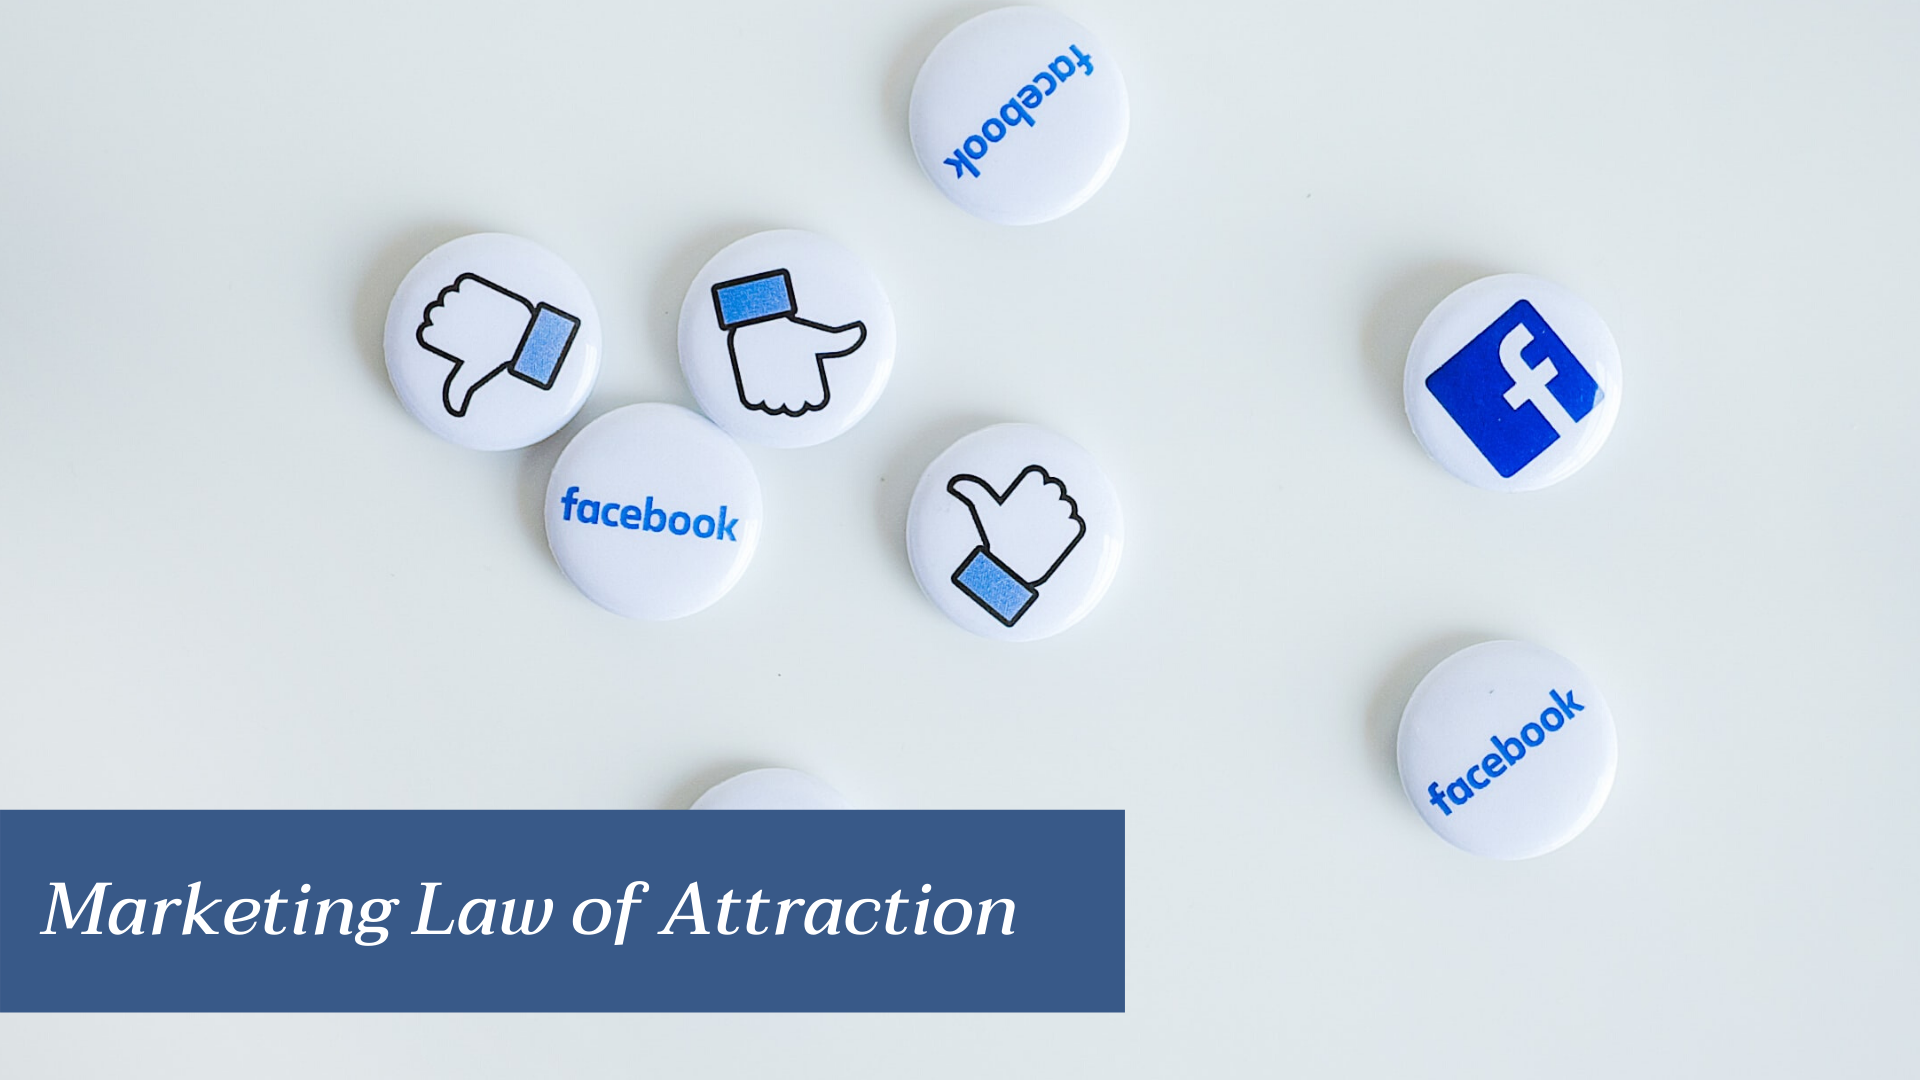 Marketing Law of Attraction